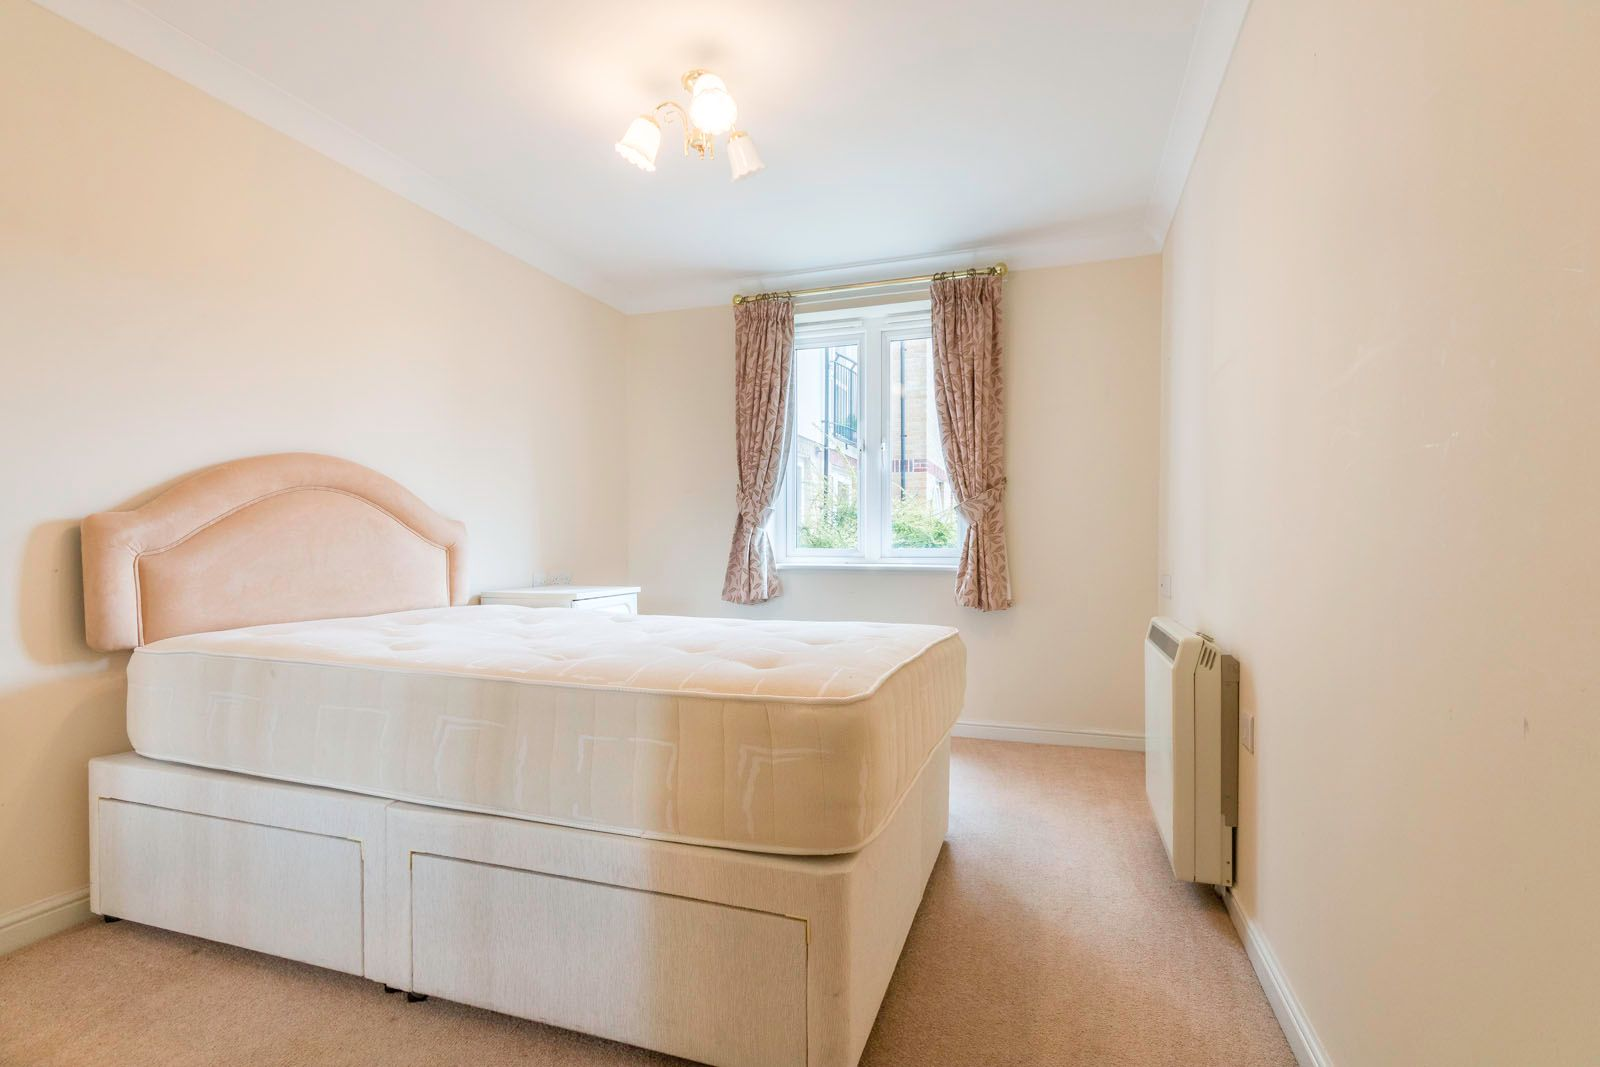 1 bed for sale in East Preston - Photo 6 (Property Image 4)